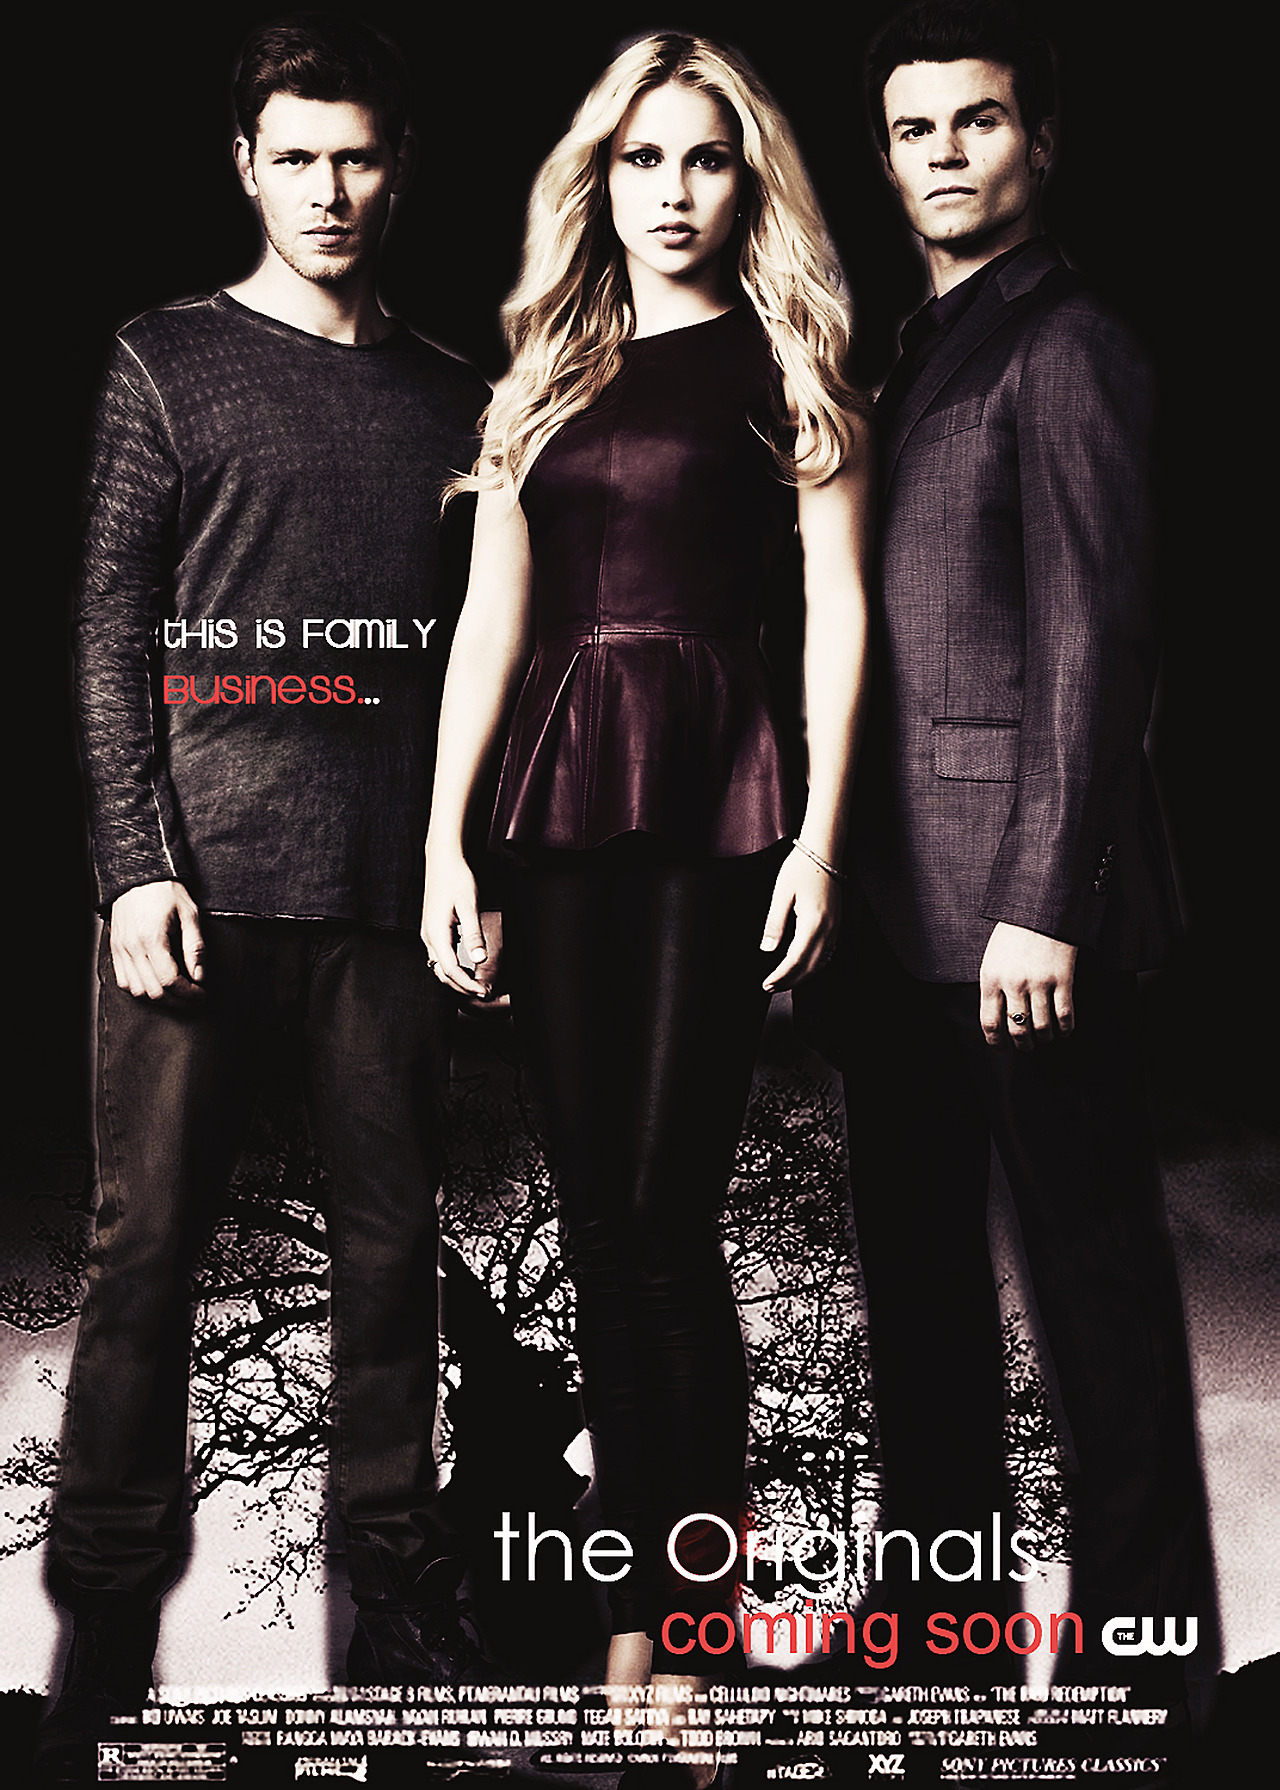 The Originals TV Series Entertainment Background Wallpapers on